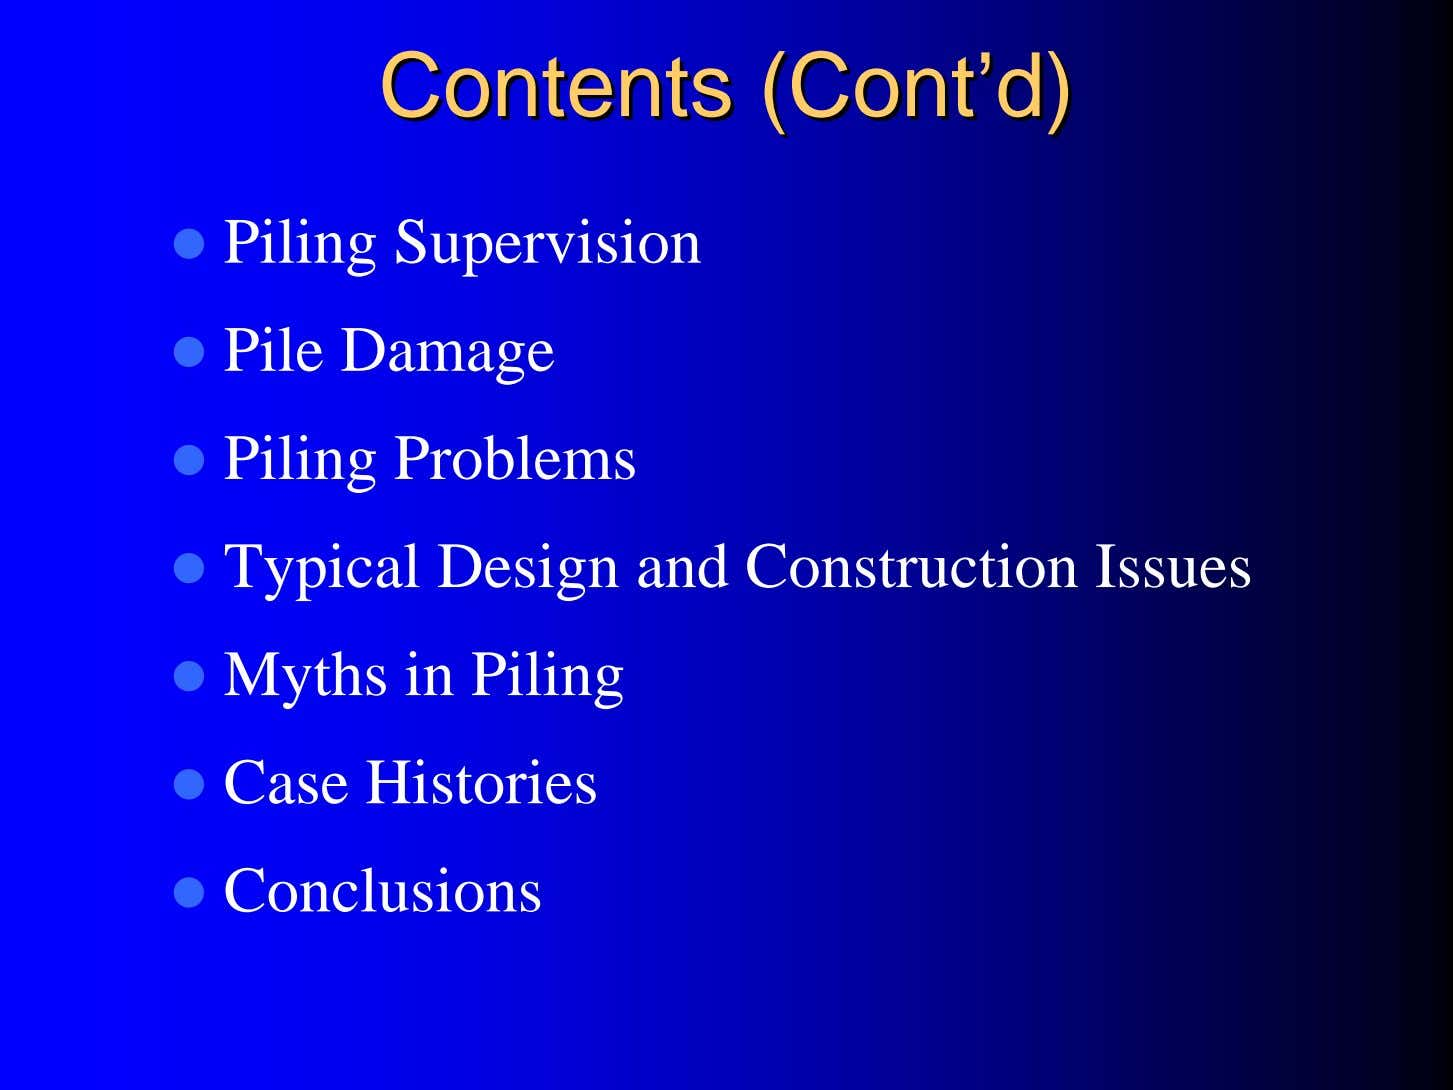 ContentsContents (Cont(Cont''d)d) Piling Supervision Pile Damage Piling Problems Typical Design and